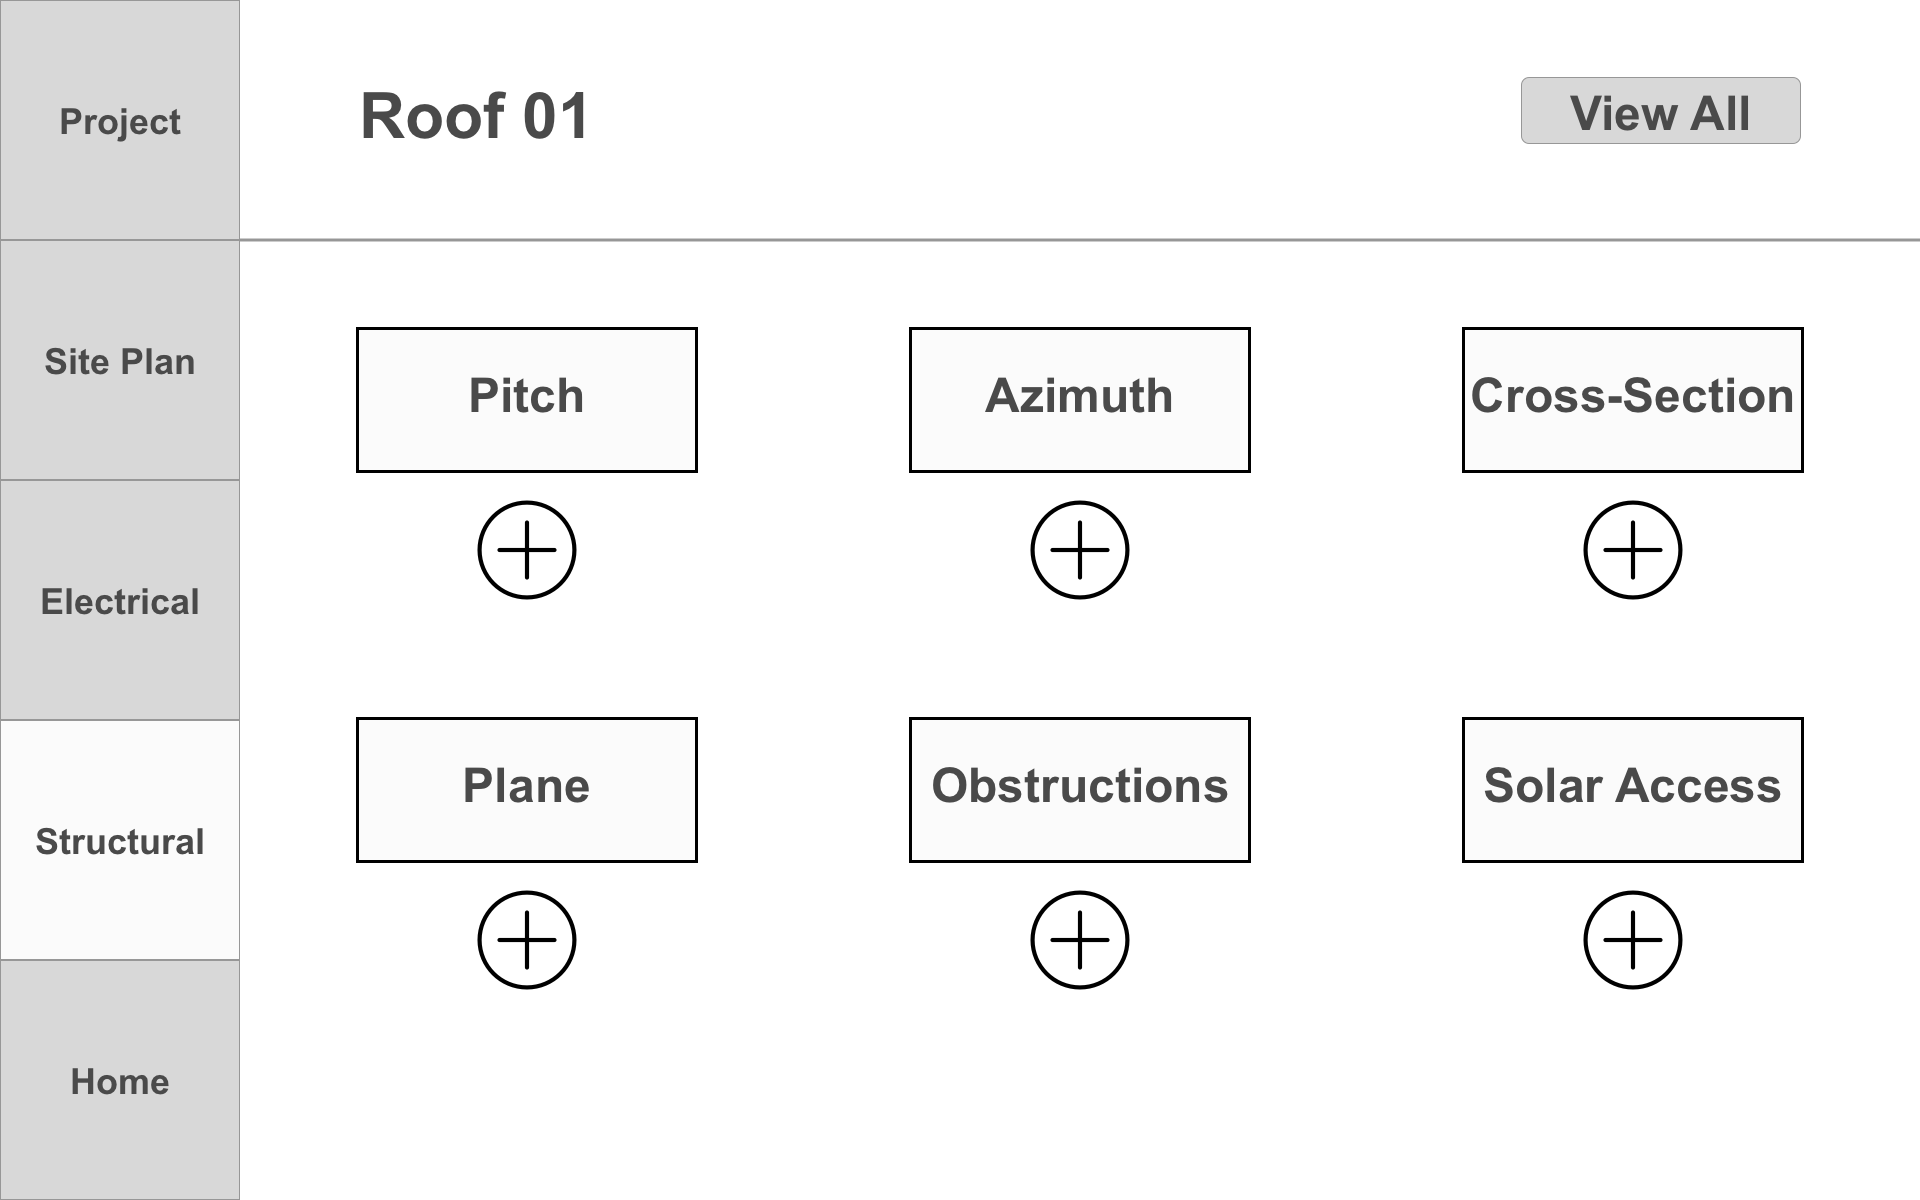 4.0.0_Structural_Roof-Detail.png